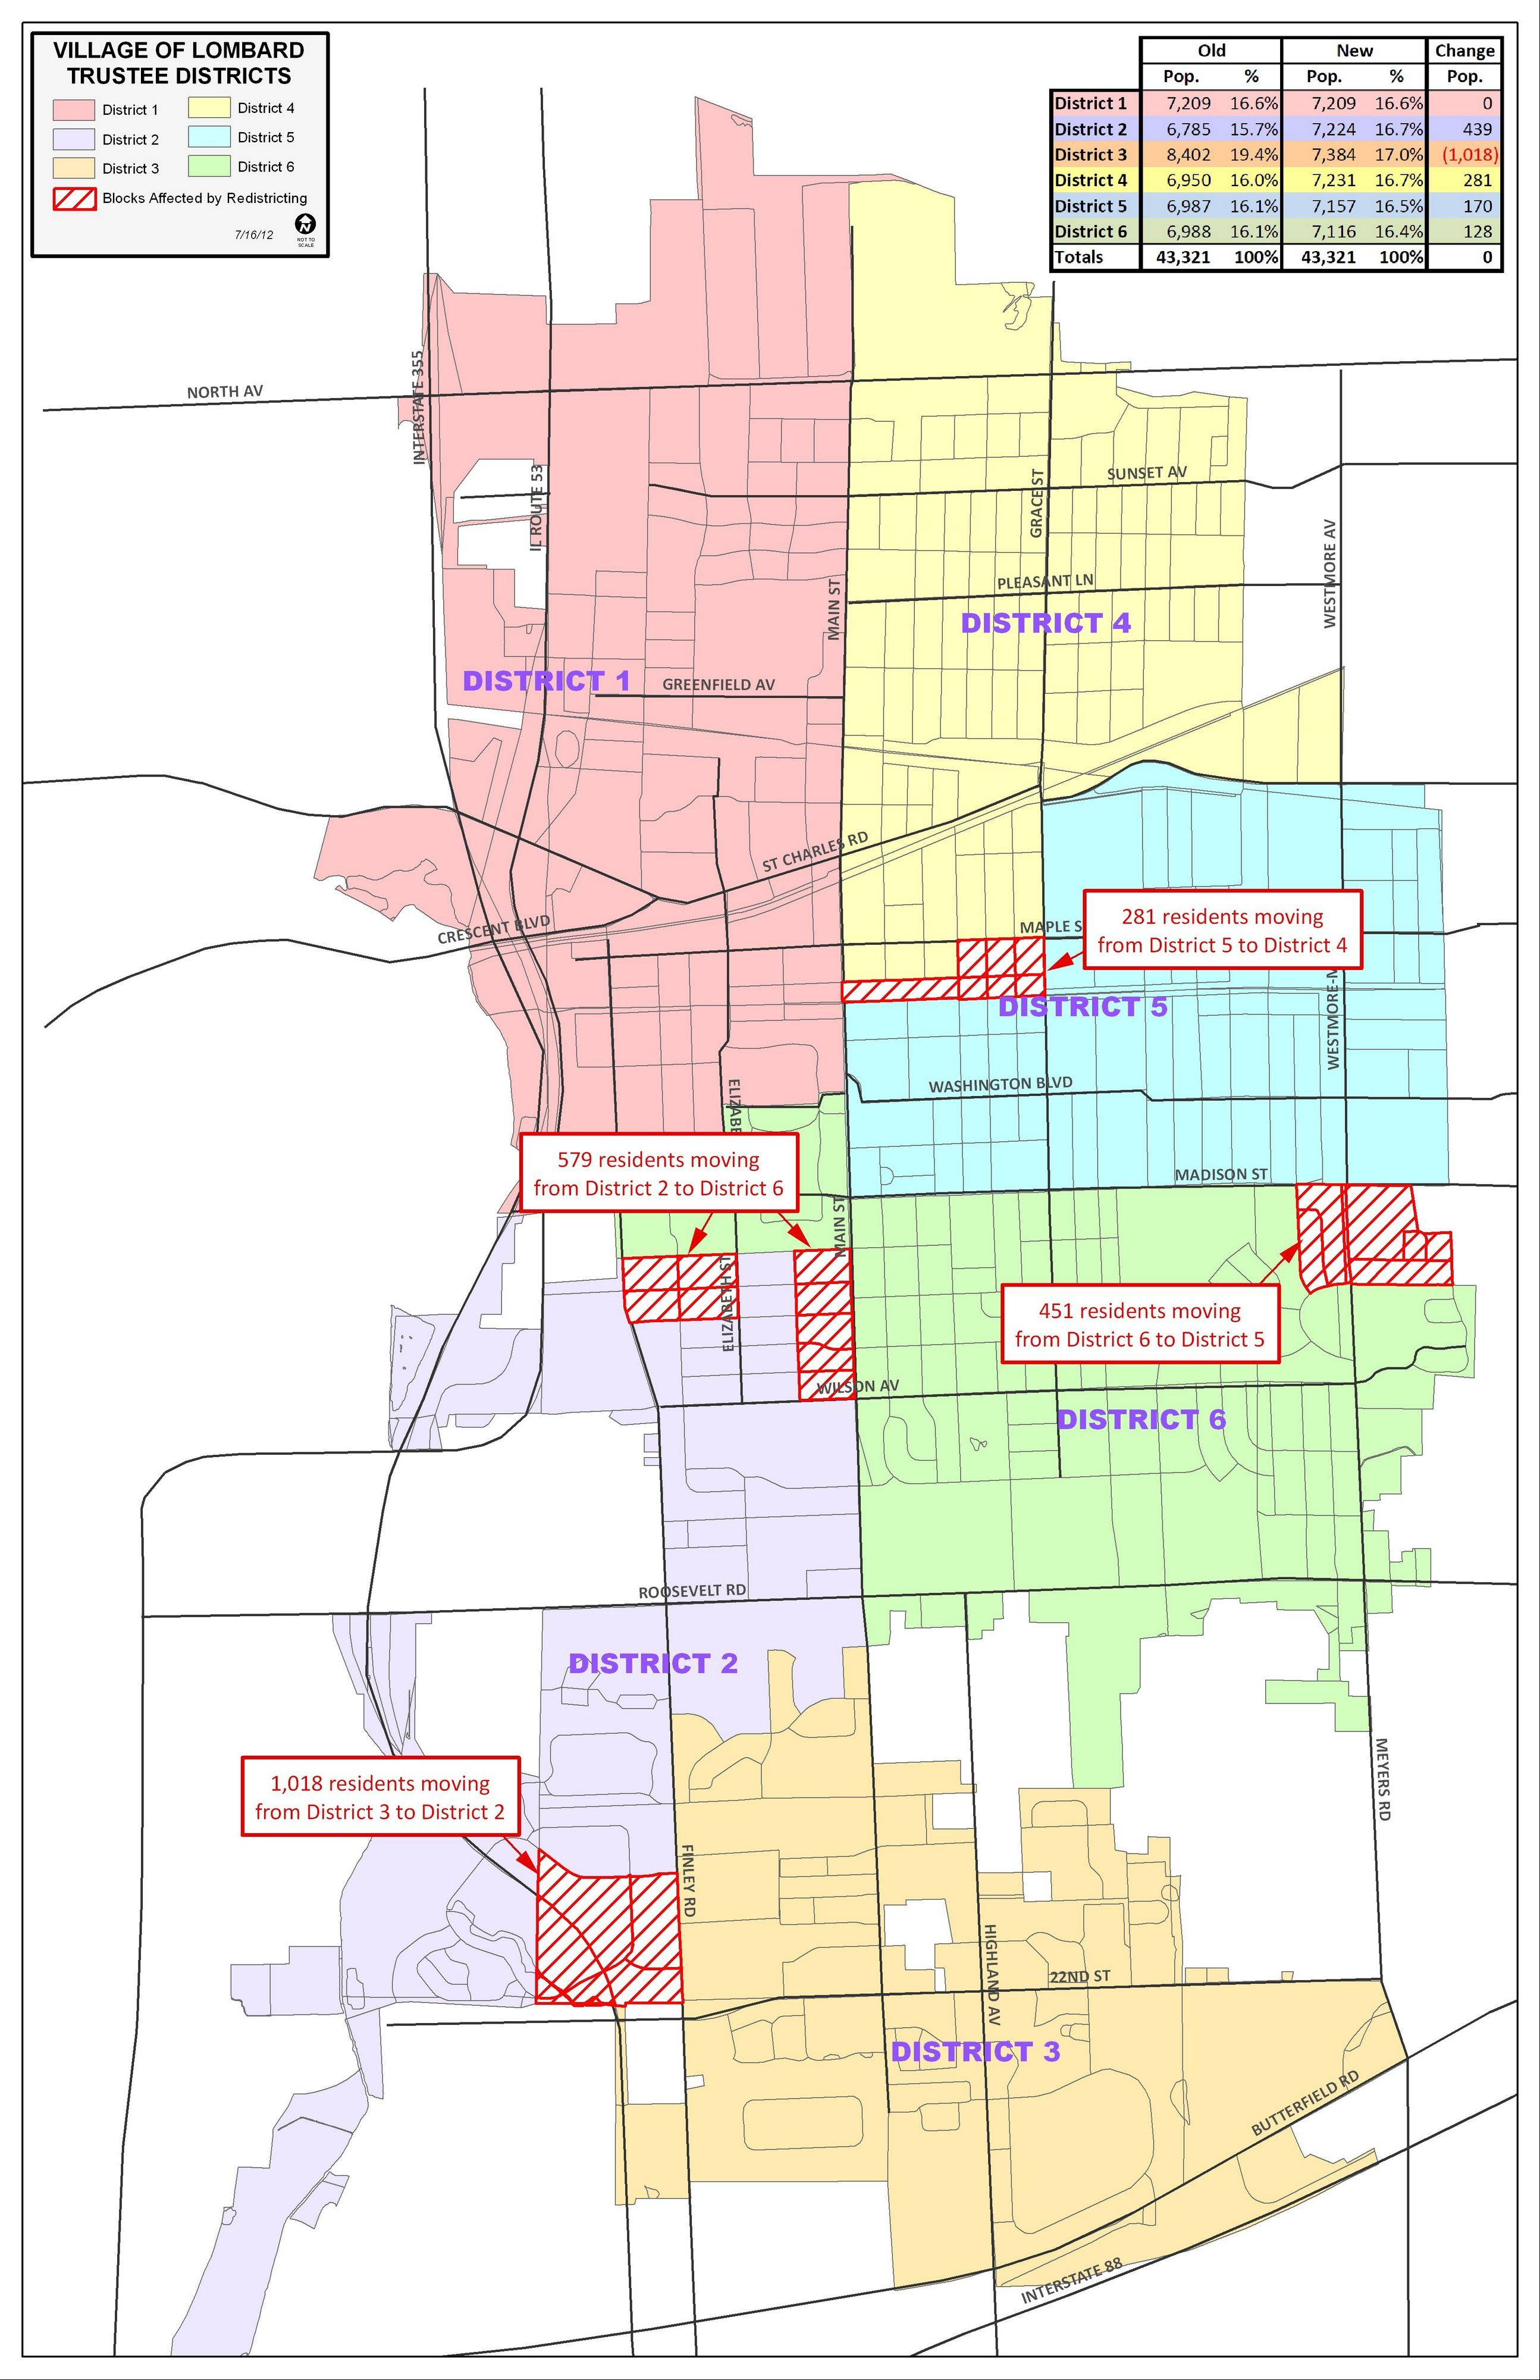 This is the district map approved by the Lombard village board earlier this summer. Trustees were required to create new voting districts that reflected the 2010 census, but some complained the map was designed to ensure trustees stayed in their existing districts.